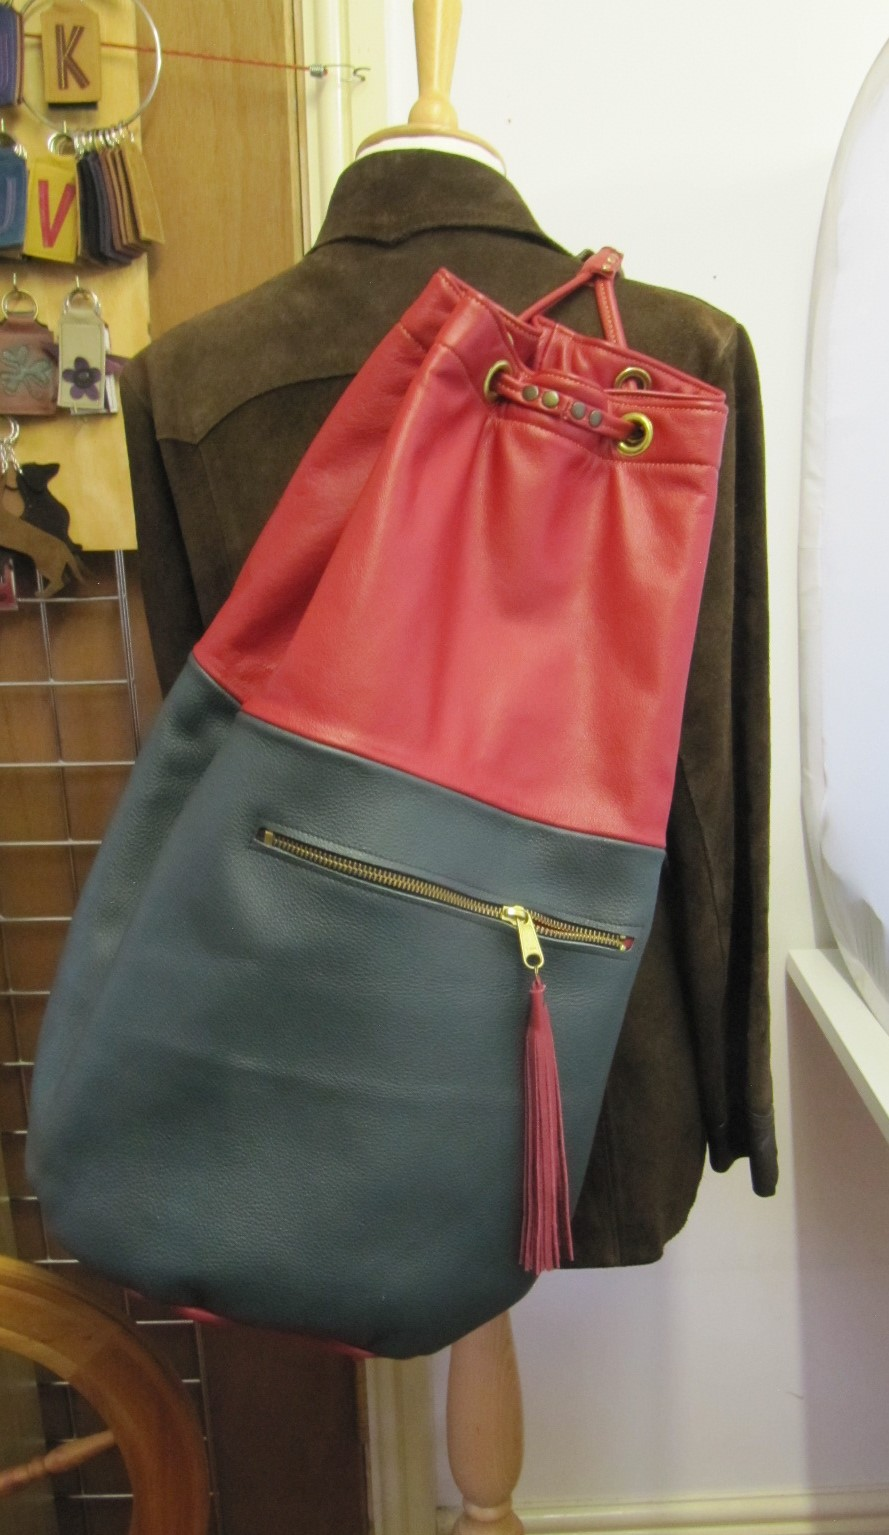 Taller leather duffle bag